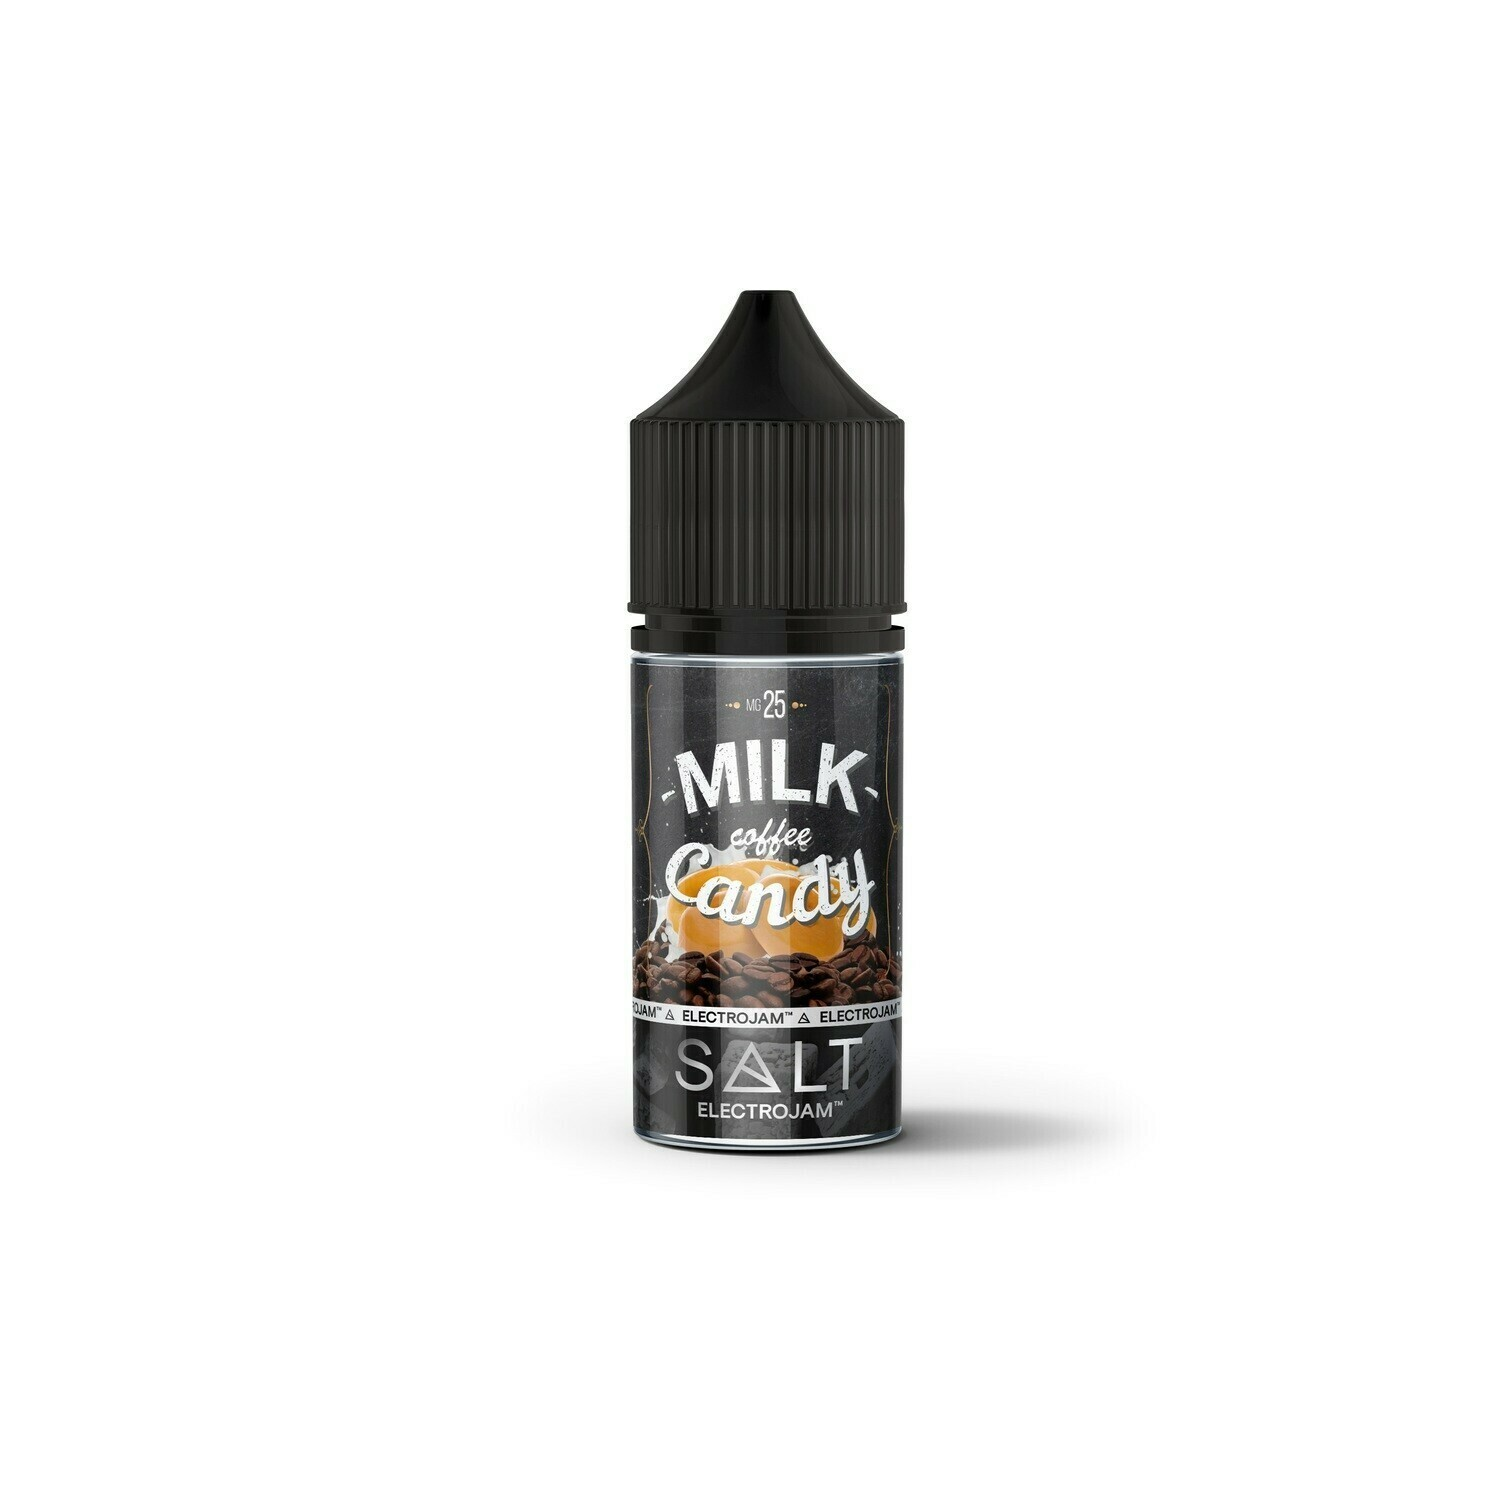 ЖИДКОСТЬ ELECTROJAM: MILK COFFE CANDY SALT 30ML